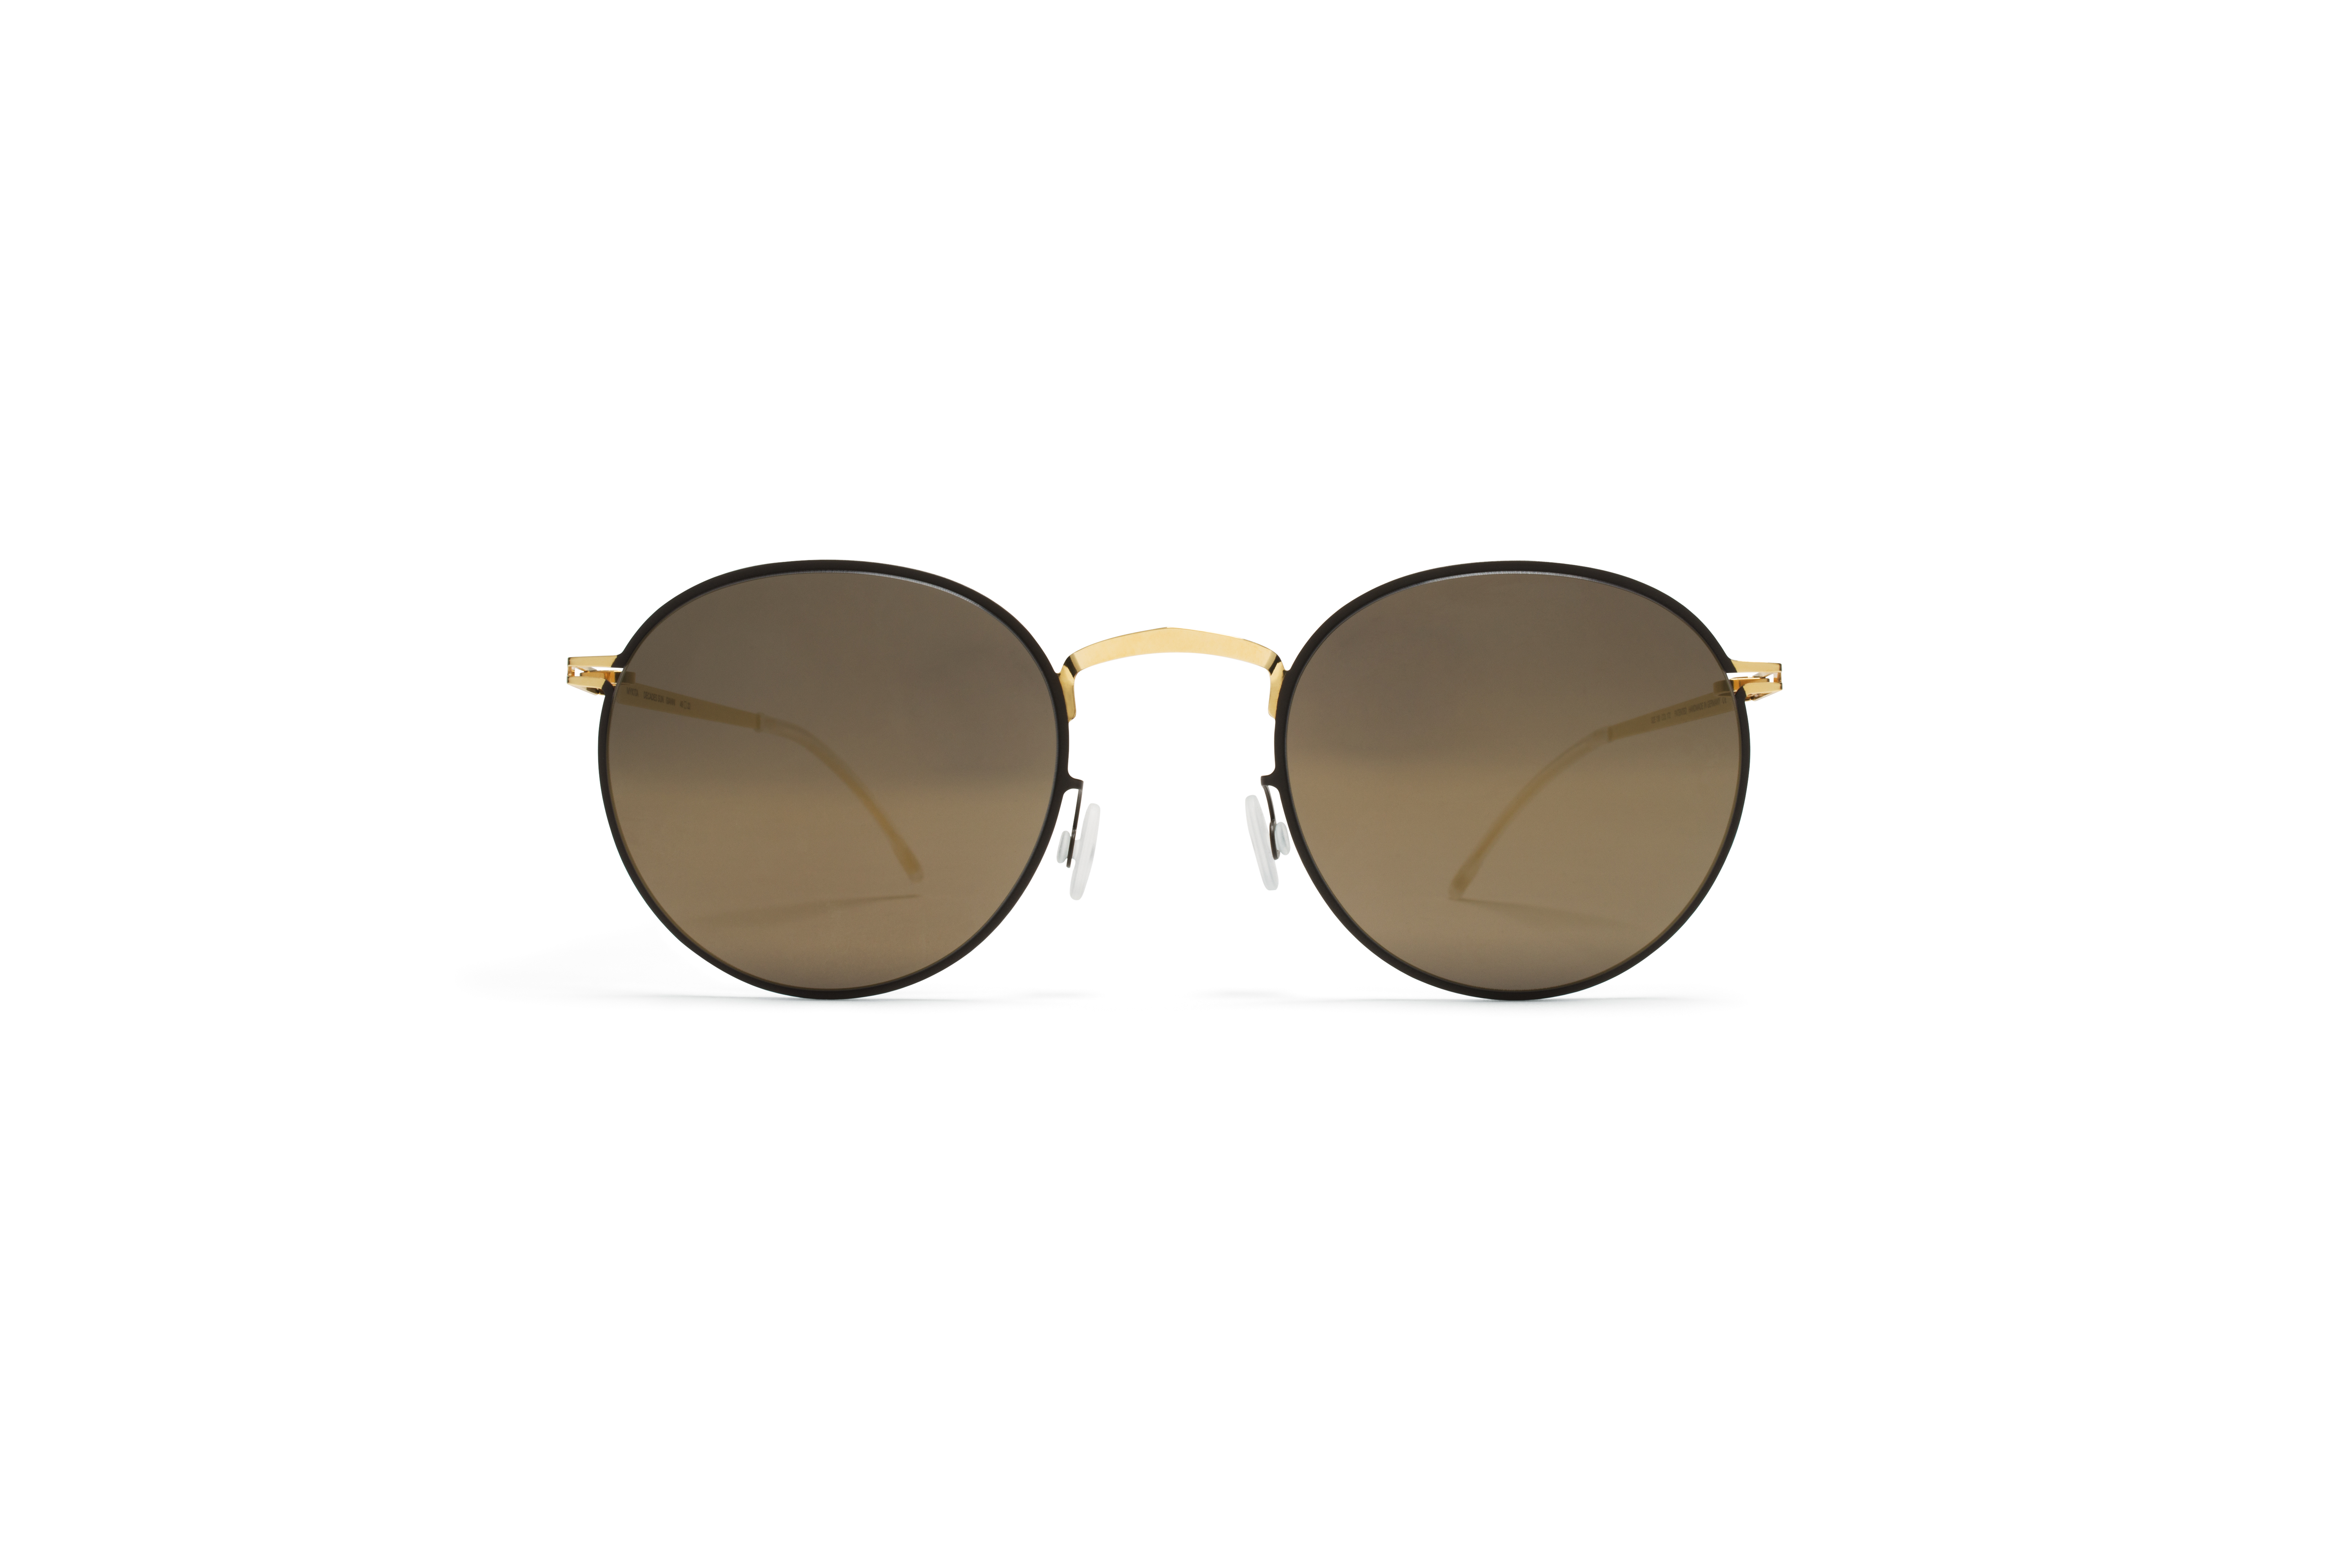 MYKITA Decades Sun Gianni Gold Terra Brilliantgrey56bb1d47bc499